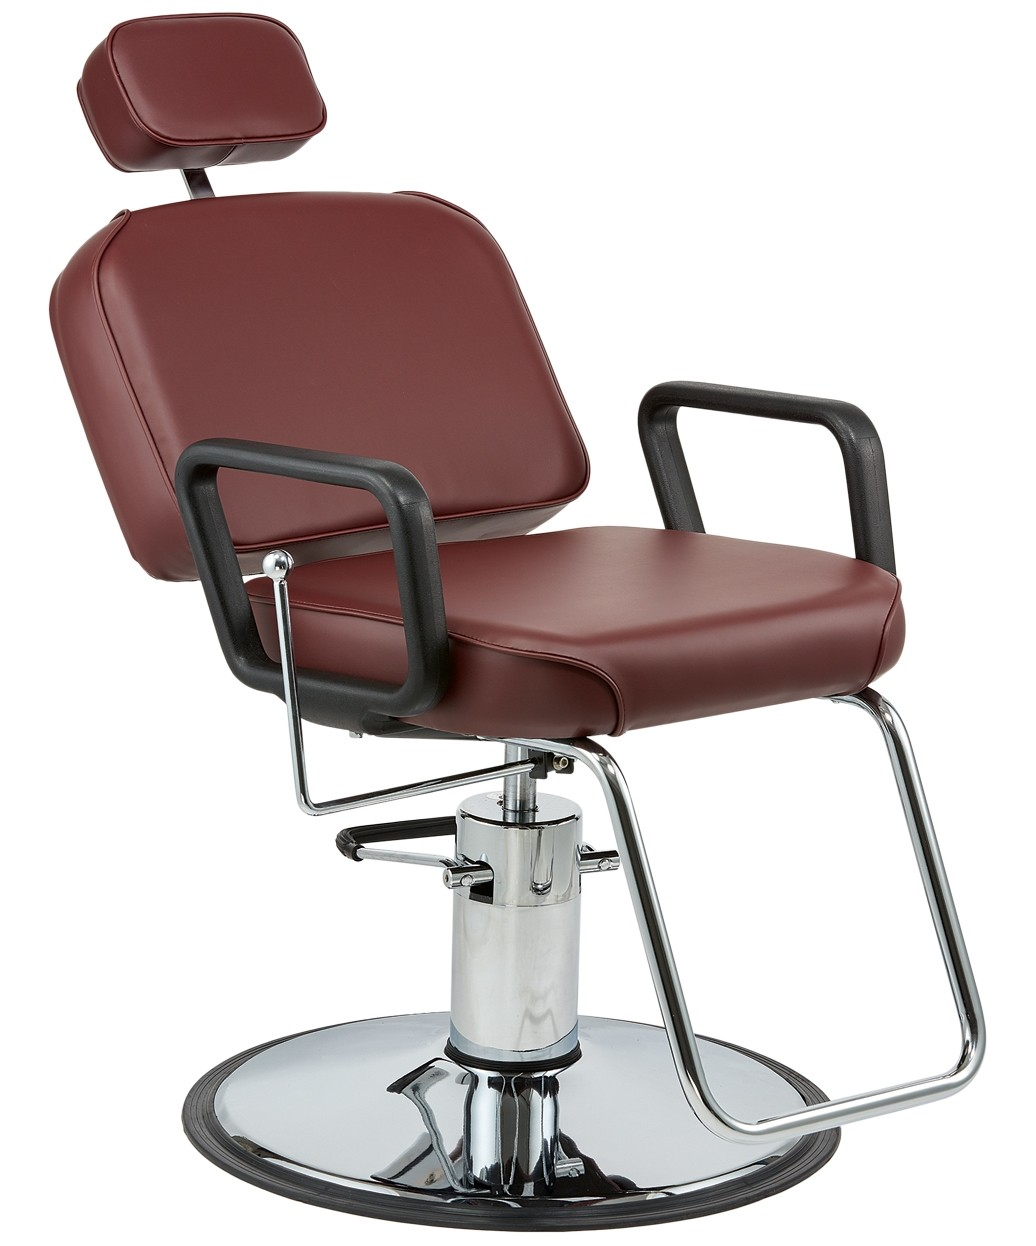 Pibbs 4347 Lambada Threading Chair